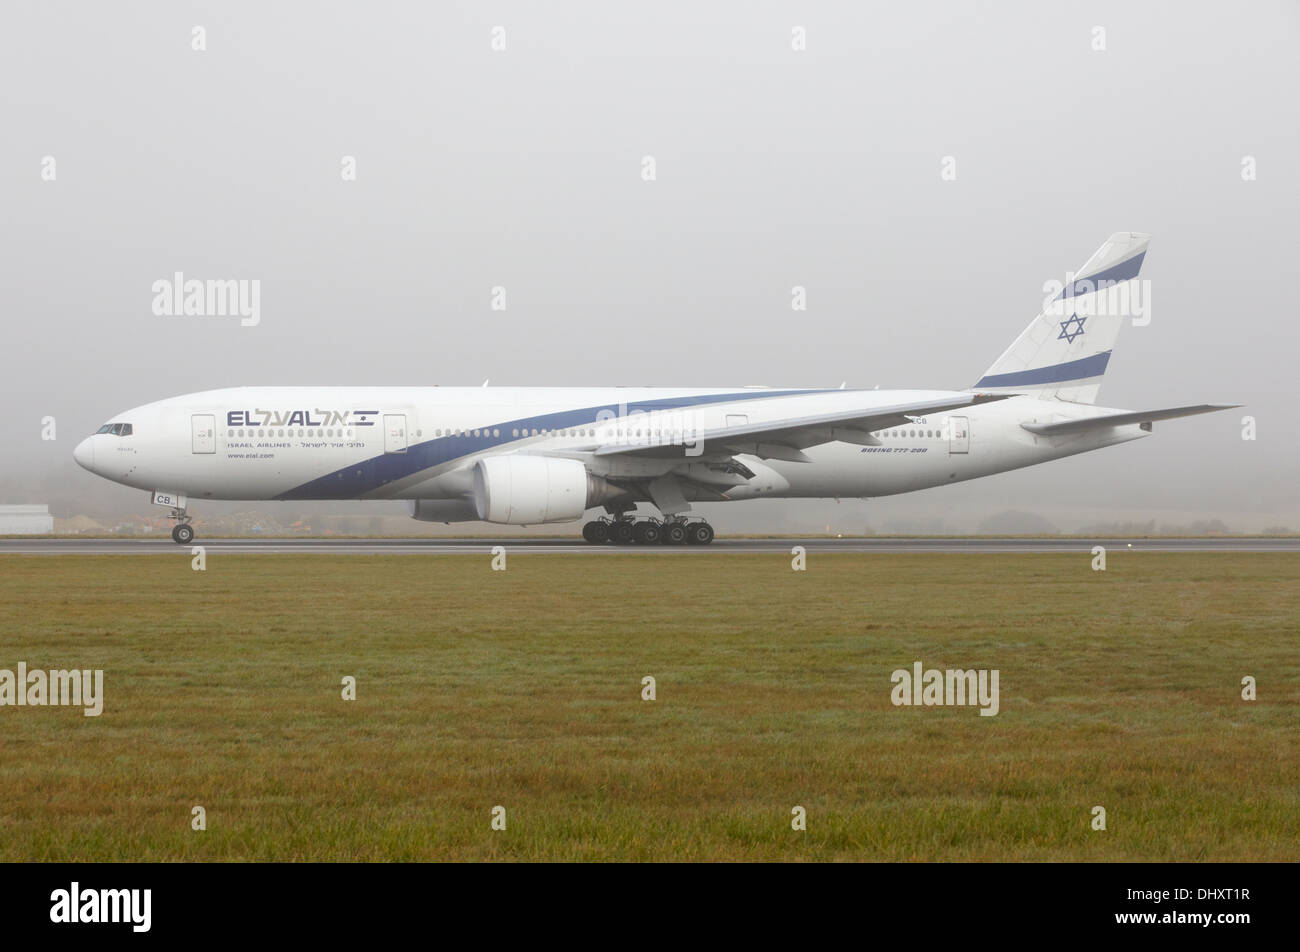 EL AL Israel Airlines Boeing 777-200 taking off on foggy day Stock Photo